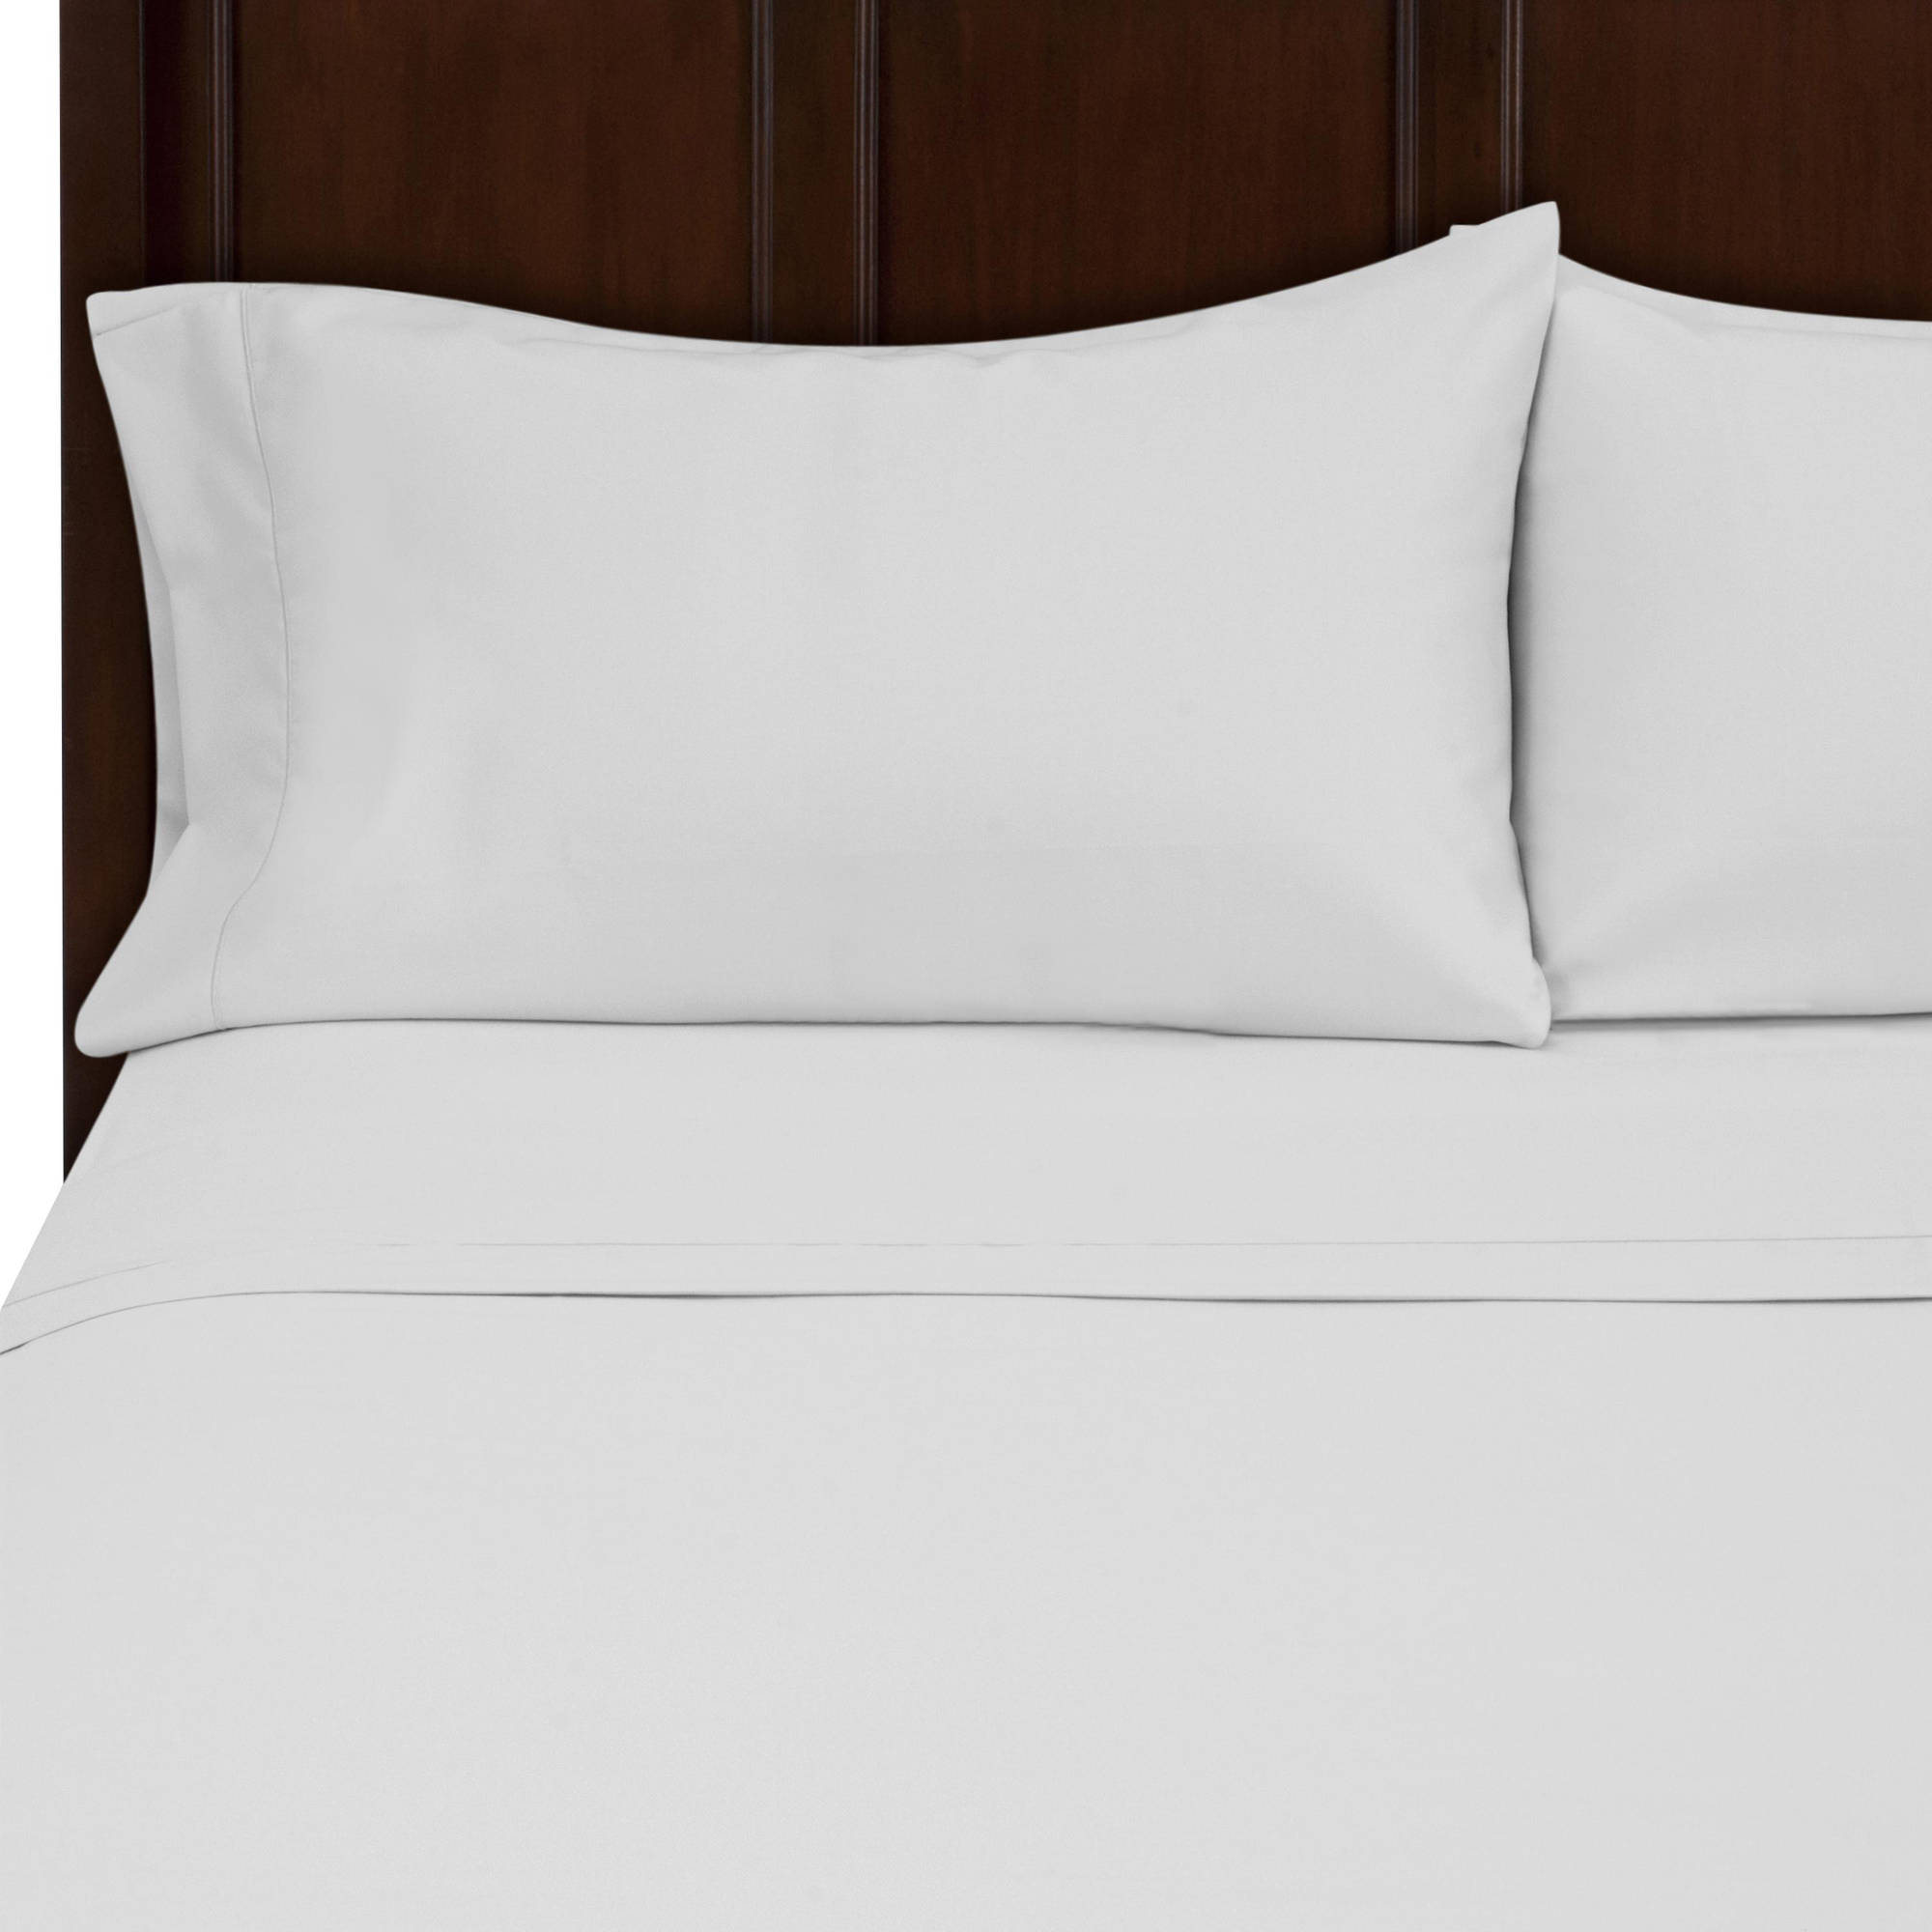 Hotel Style 500 Thread Count Egyptian Cotton Bedding Sheet Set   Walmart.com